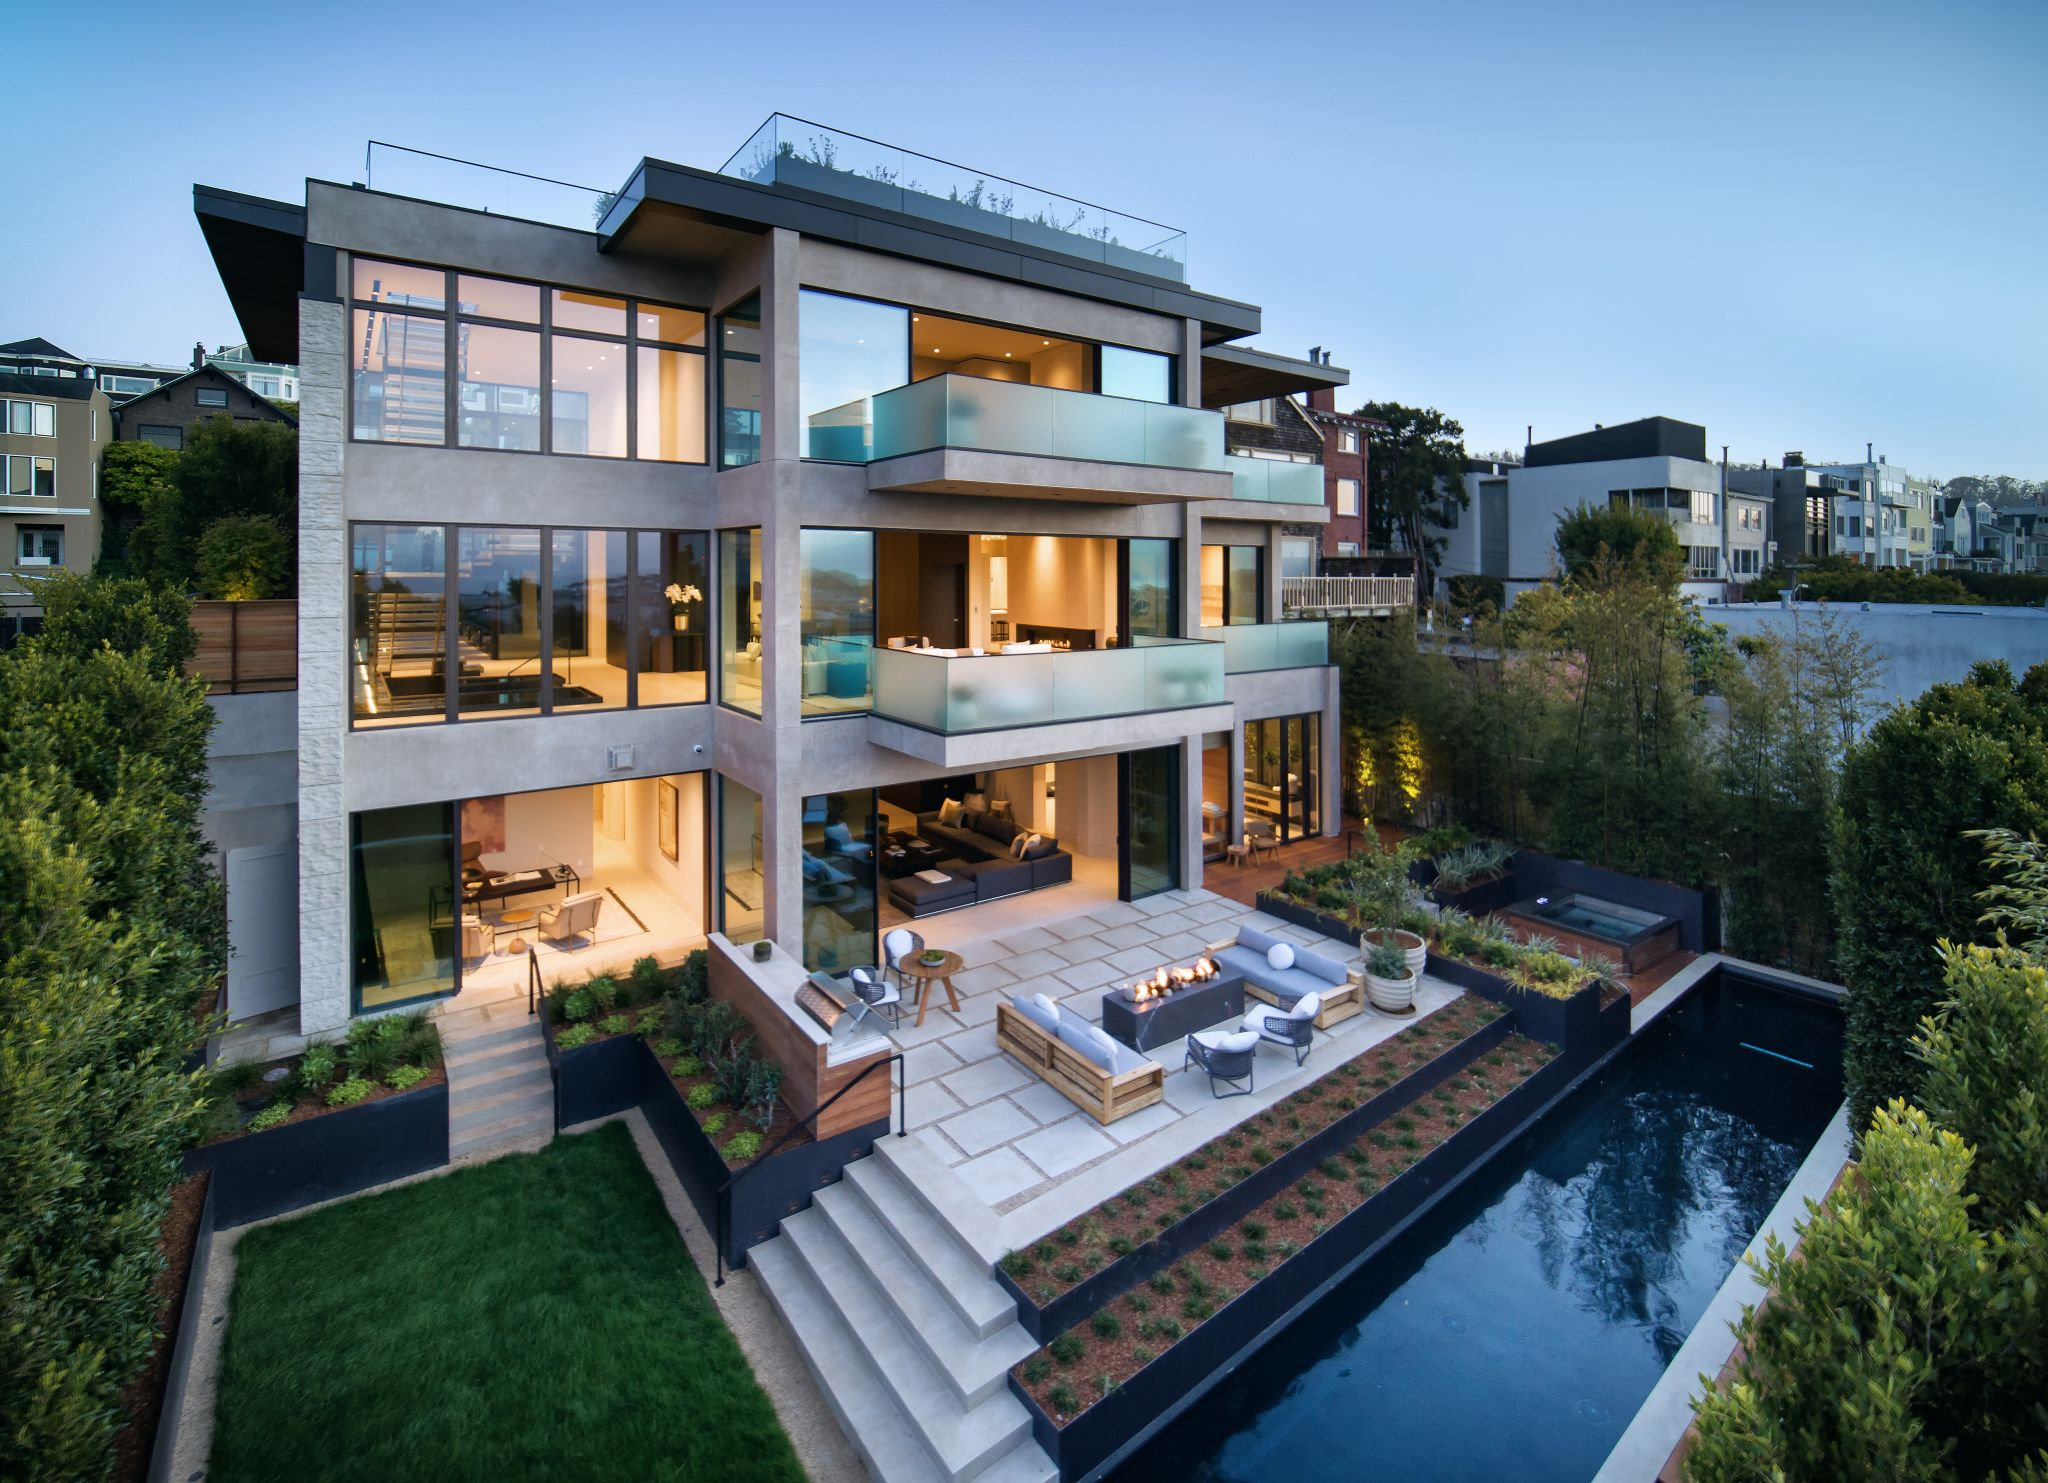 This mansion could break SF's record for most expensive home ever sold